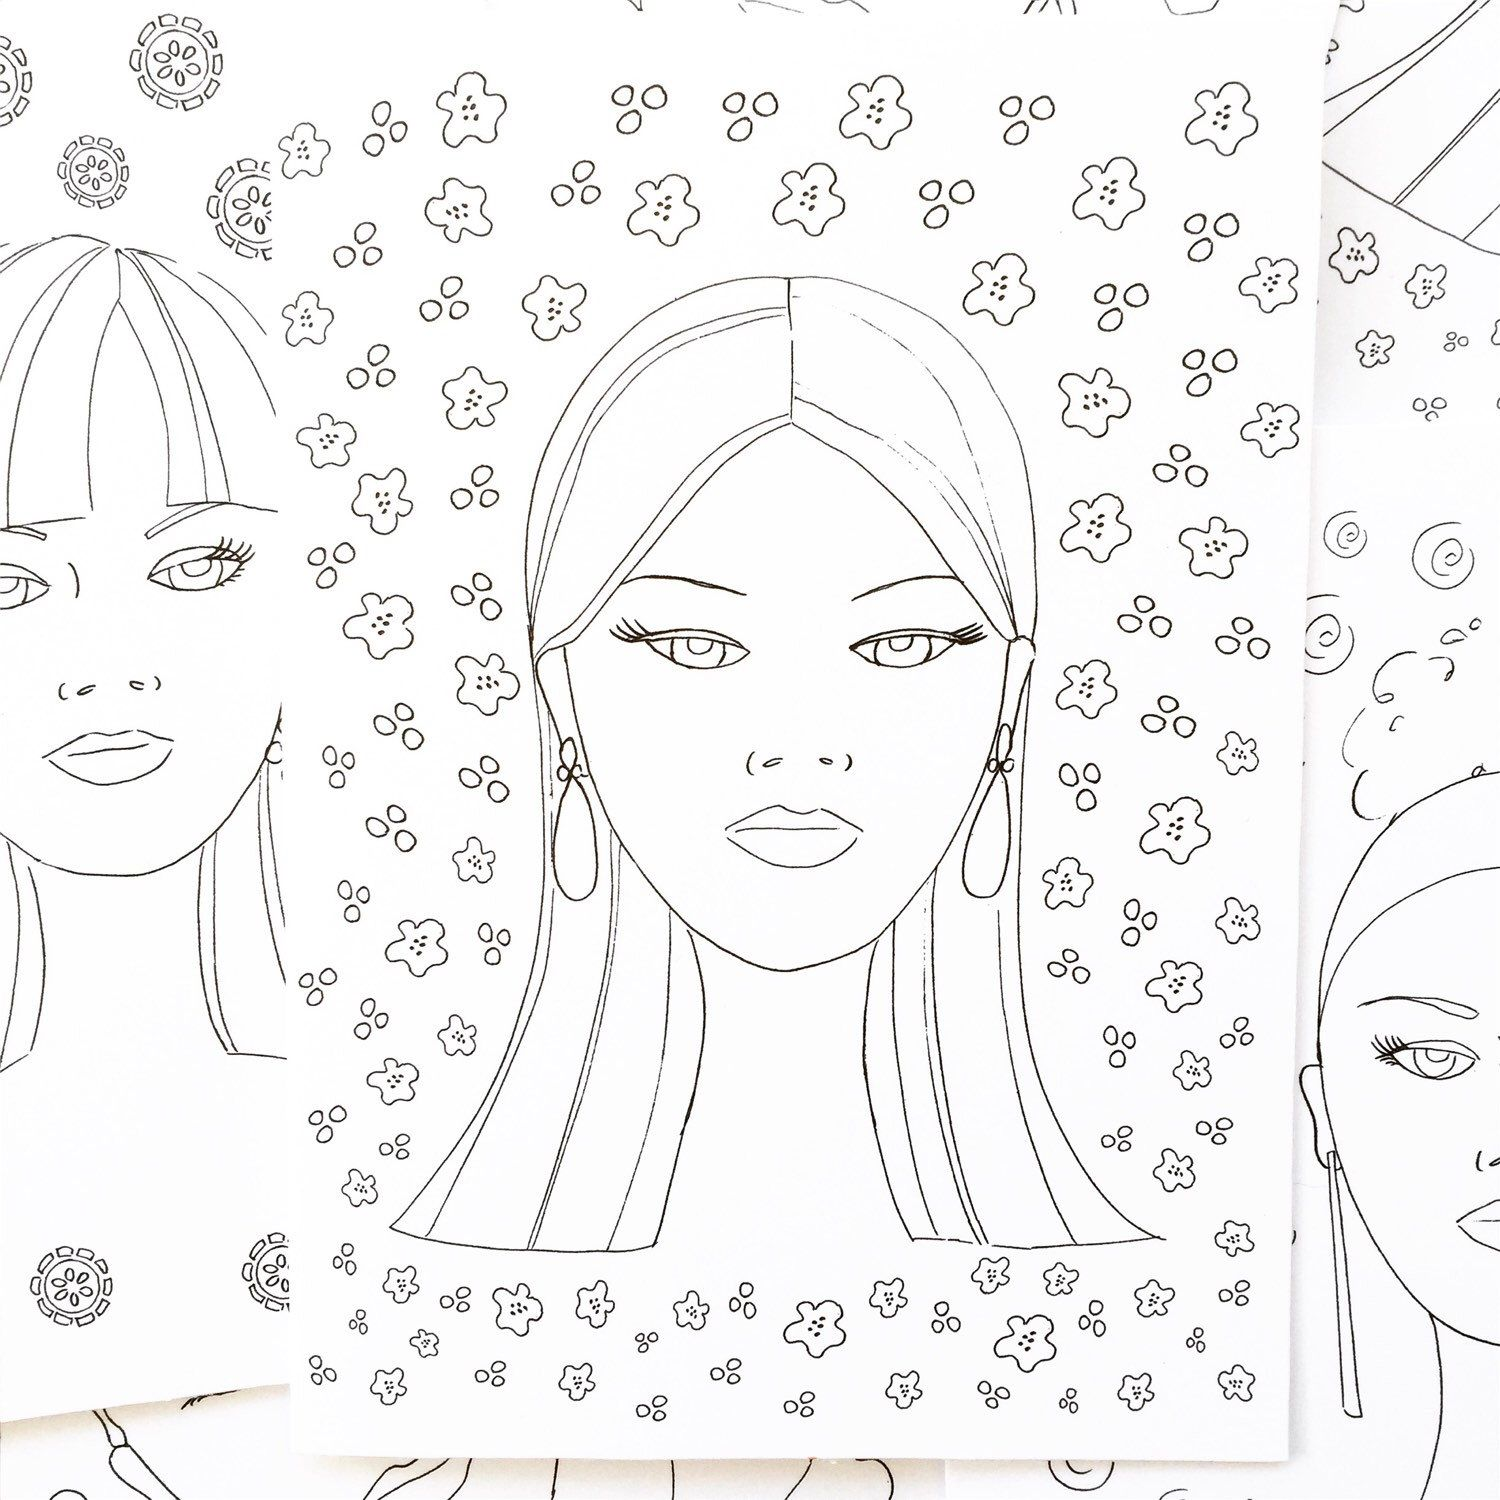 Practice Your Best Makeup Artist Techniques On Assorted Fashion Faces In My Be Your Own Fashion Artist Coloring Artist Style Best Makeup Artist Coloring Books